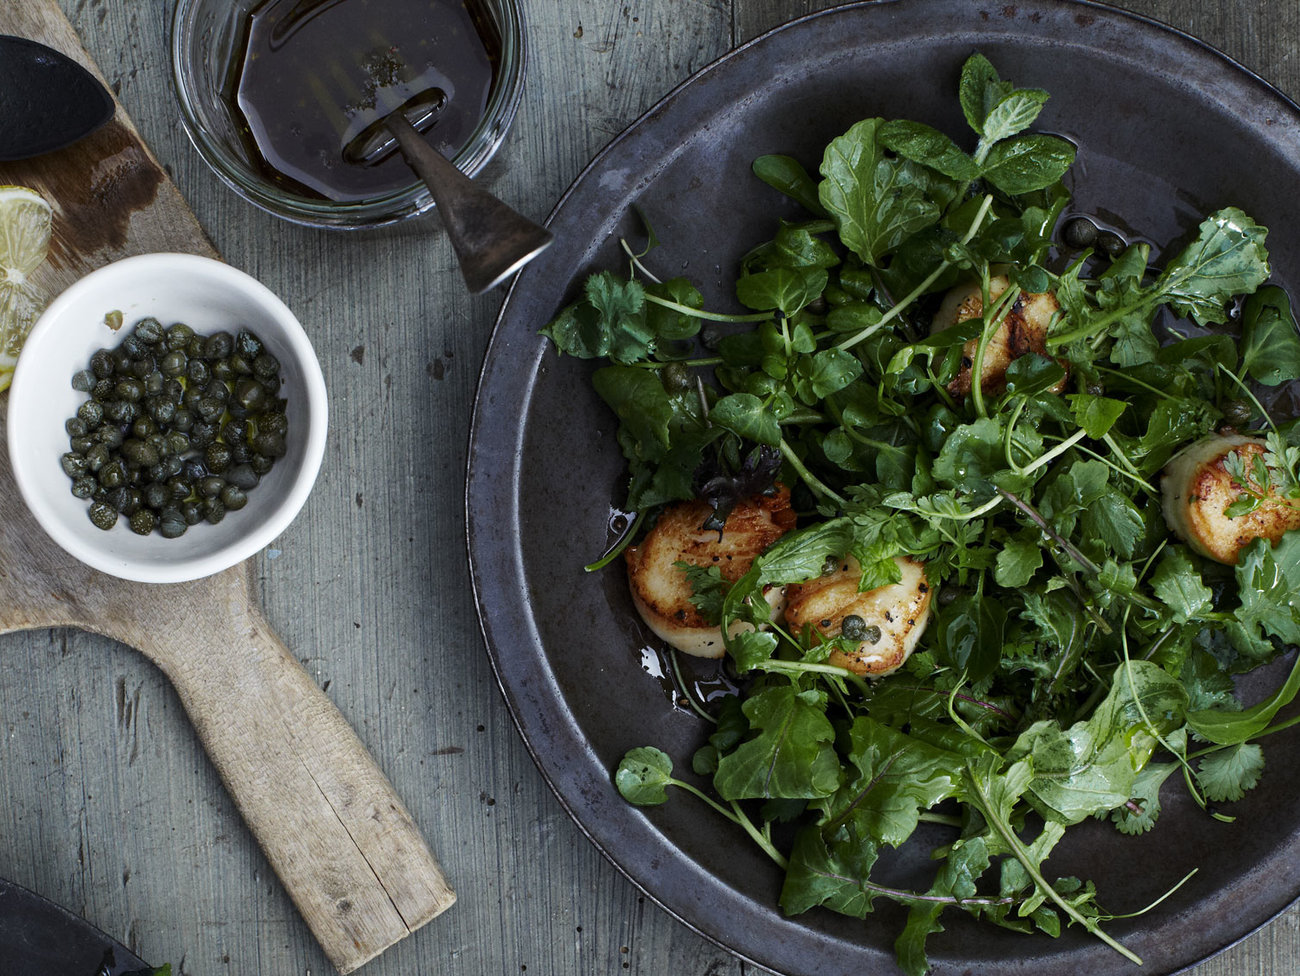 Grilled Scallops over Mixed Green and Herb Salad